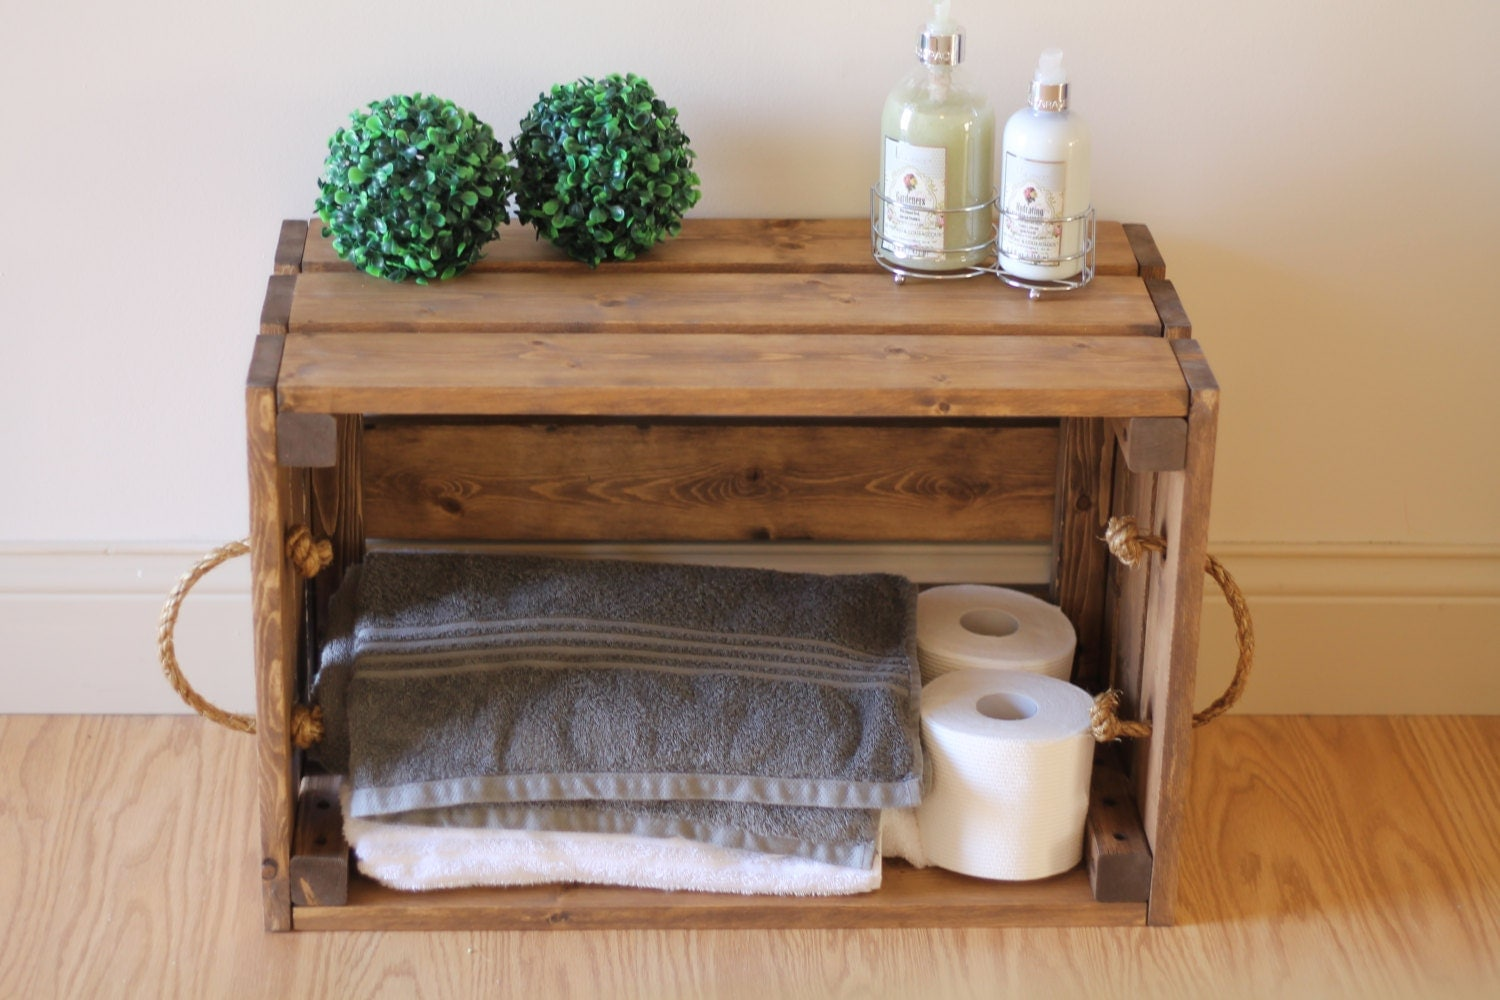 Rustic bathroom storage -  Zoom